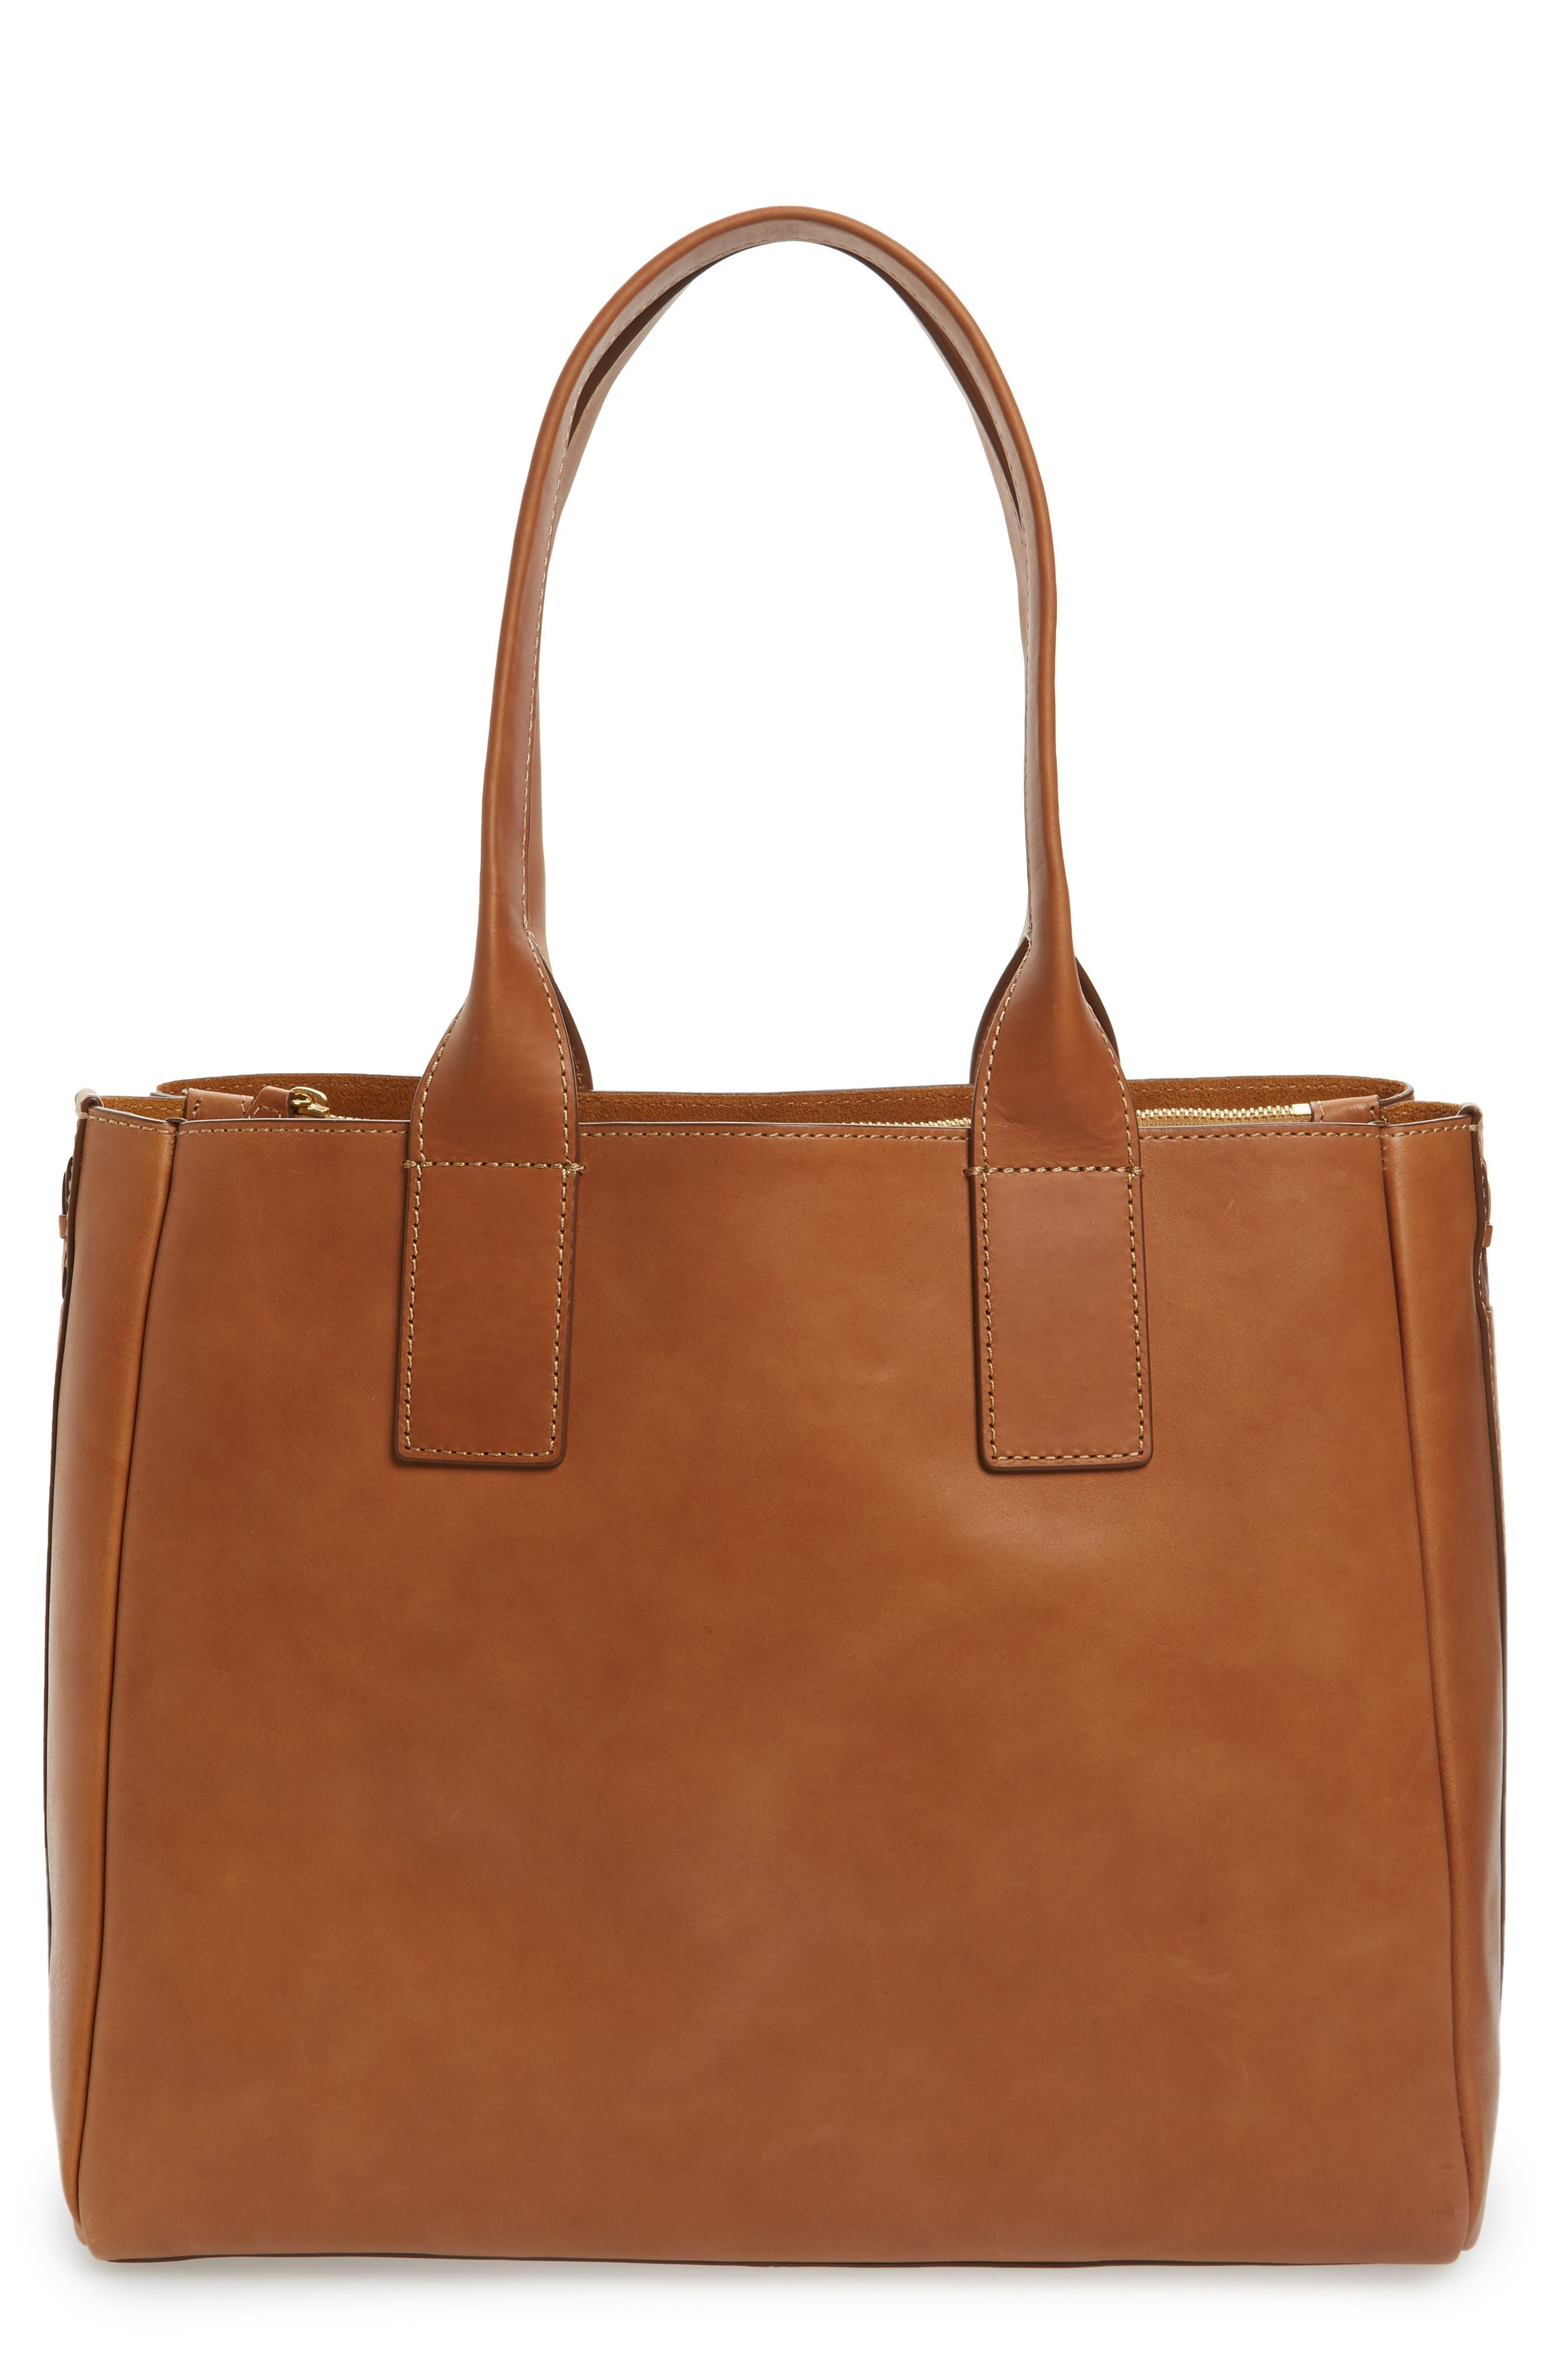 Alternate Image 1 Selected - Frye Ilana Leather Tote